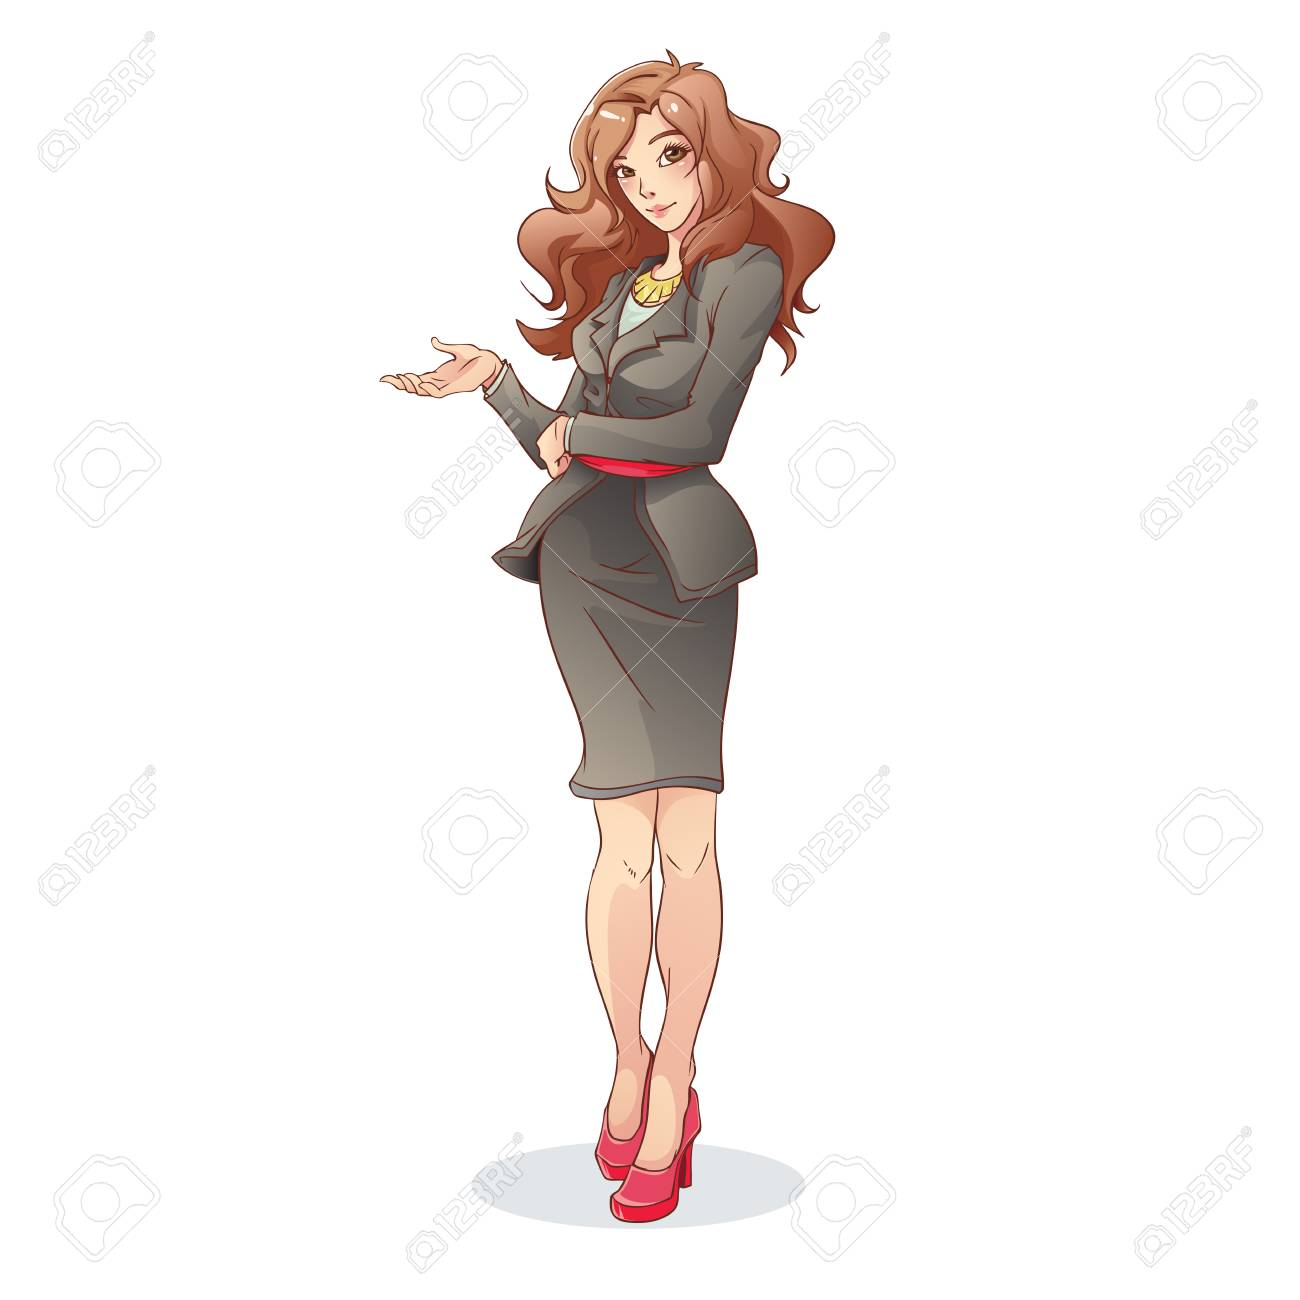 Business Woman - 58879793